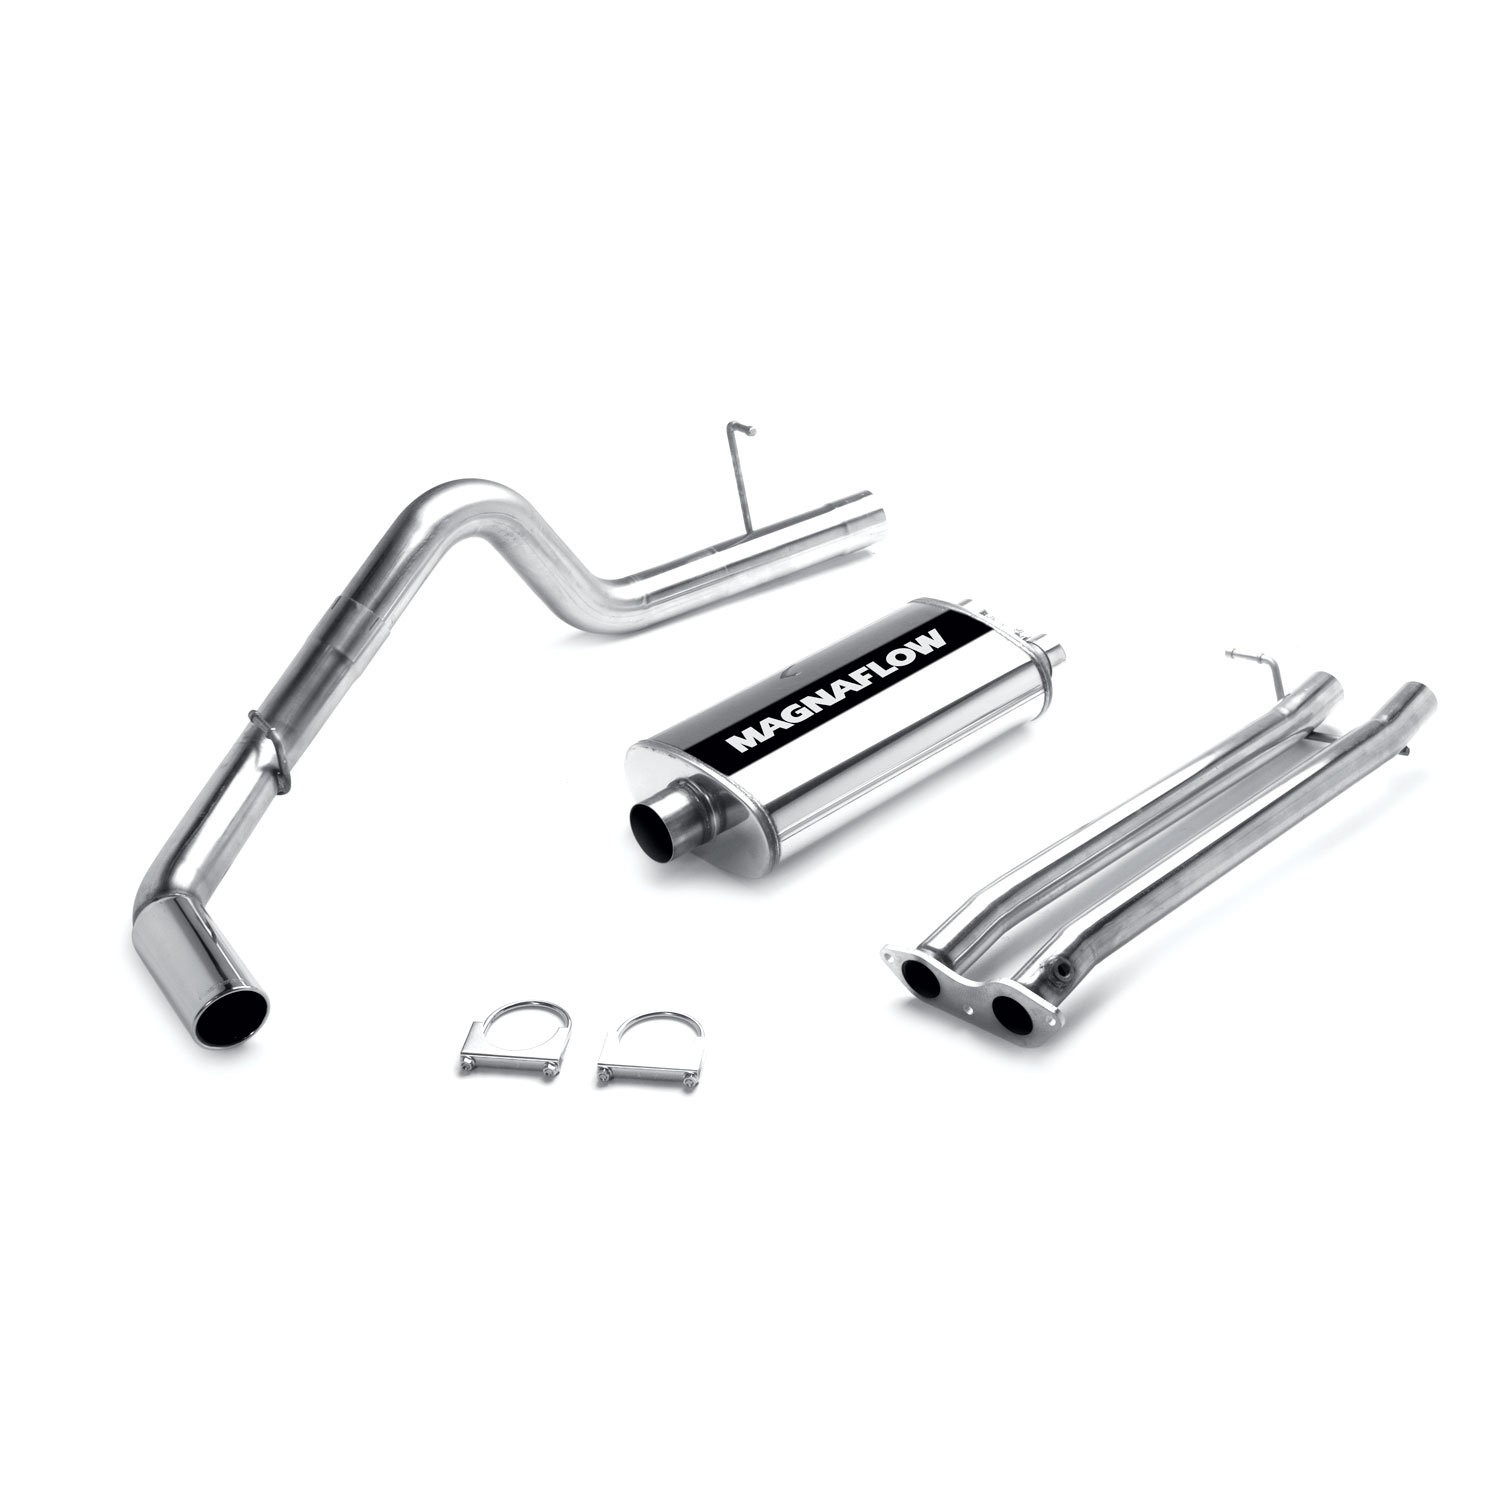 Magnaflow Cat Back Mf Series Exhaust System